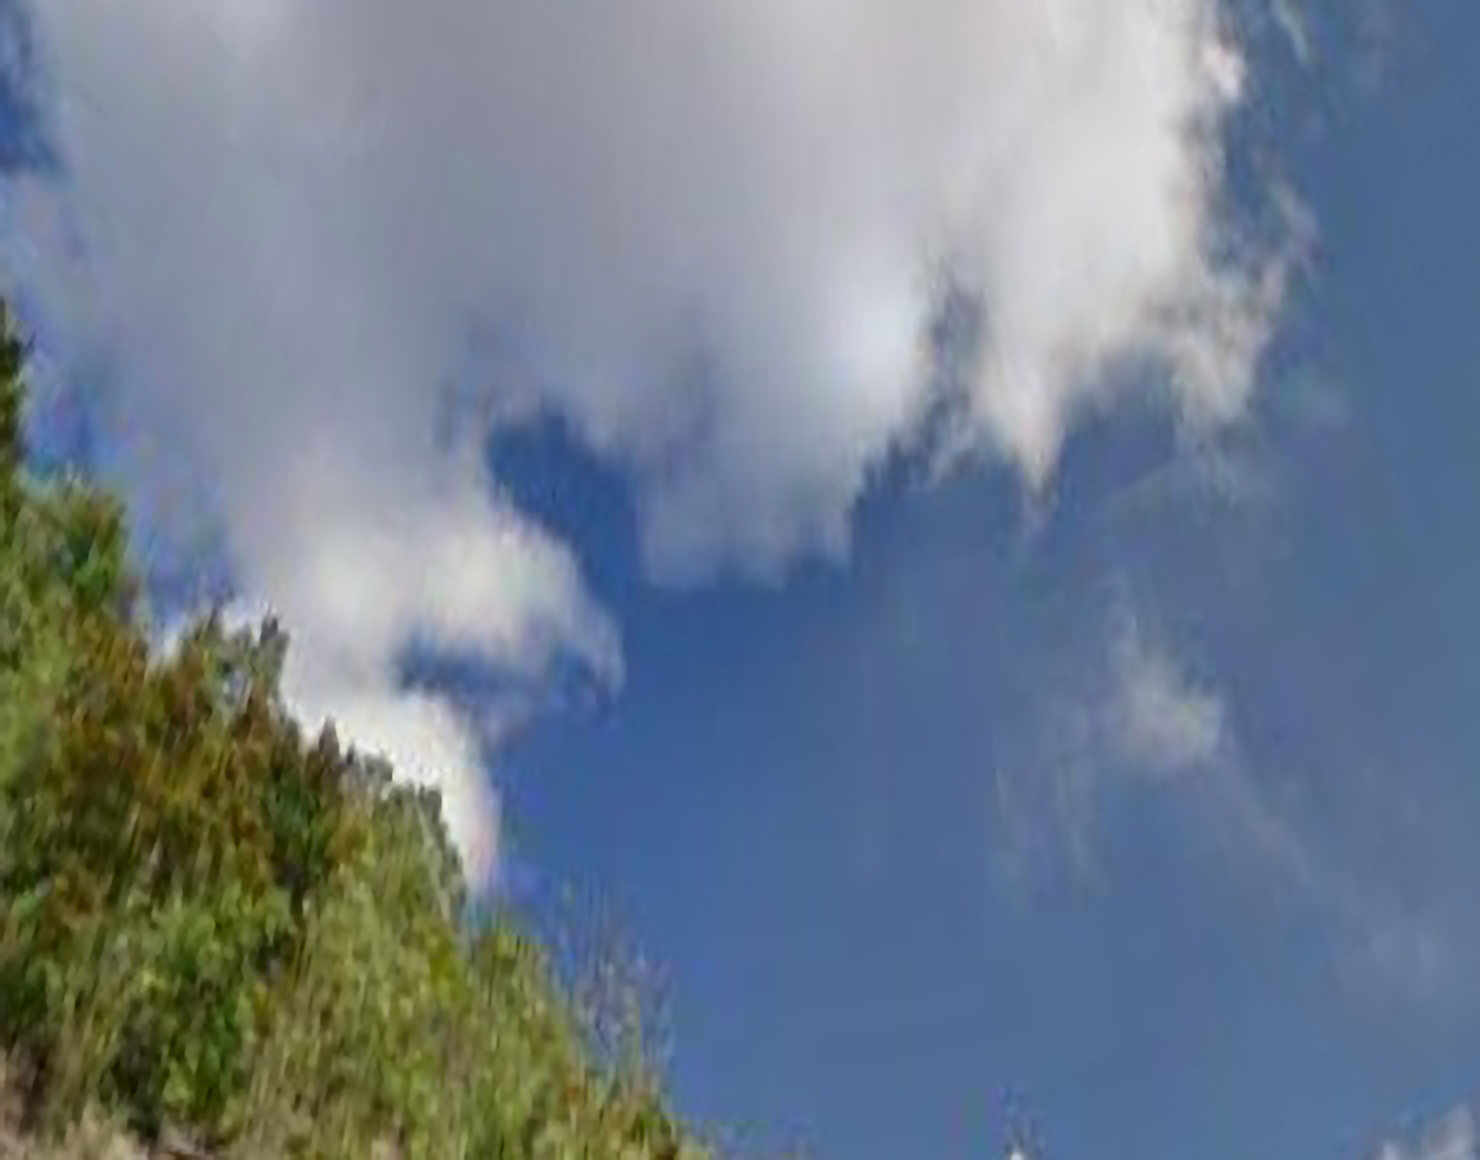 An abstract photograph of clouds against a blue sky. A lush green hill covered in trees takes up the bottom-left corner.